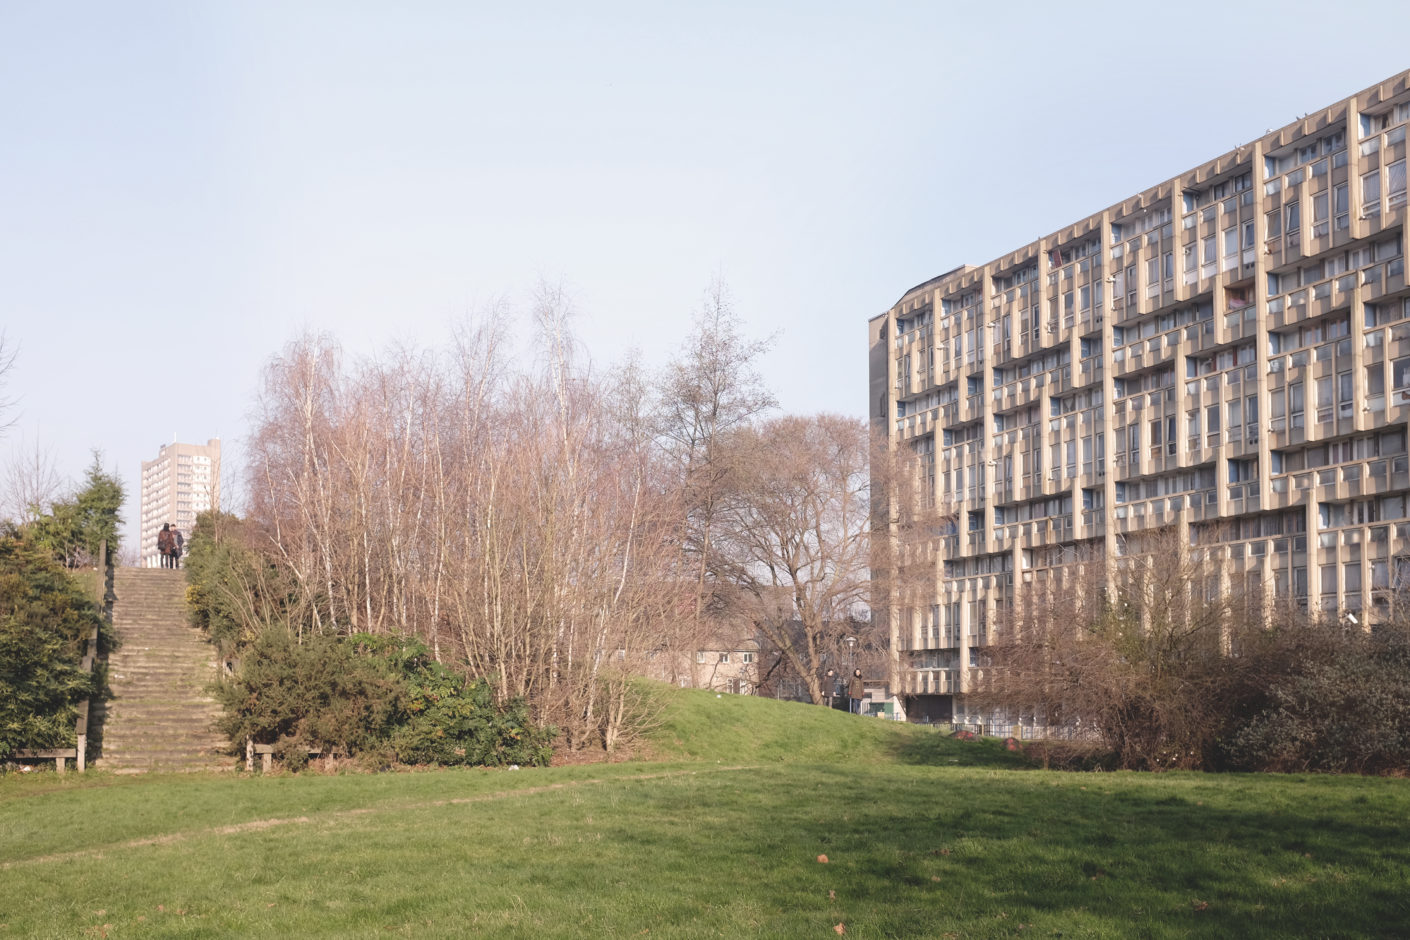 Robin-Hood-Gardens-London-Brutalism-Architecture-Park-and-Hill.jpg